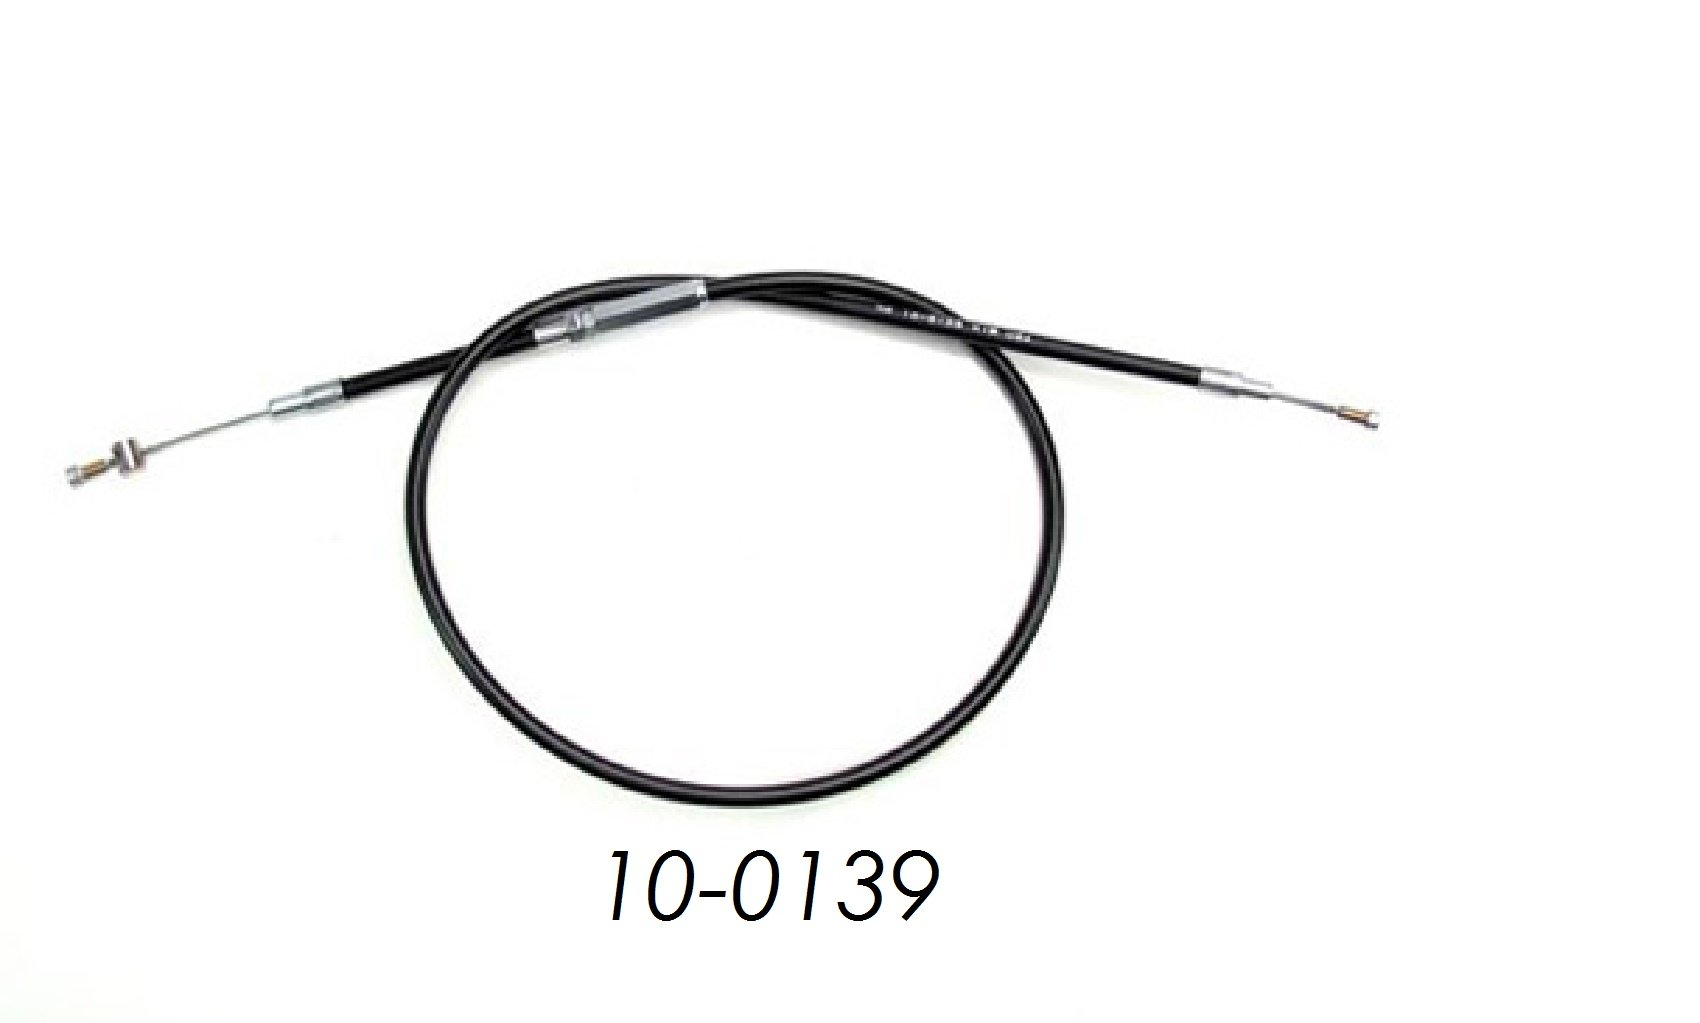 CABLE, BLACK VINYL, CLUTCH, Manufacturer: MOTION PRO, Part Number: 143477-AD, VPN: 10-0139-AD, Condition: New